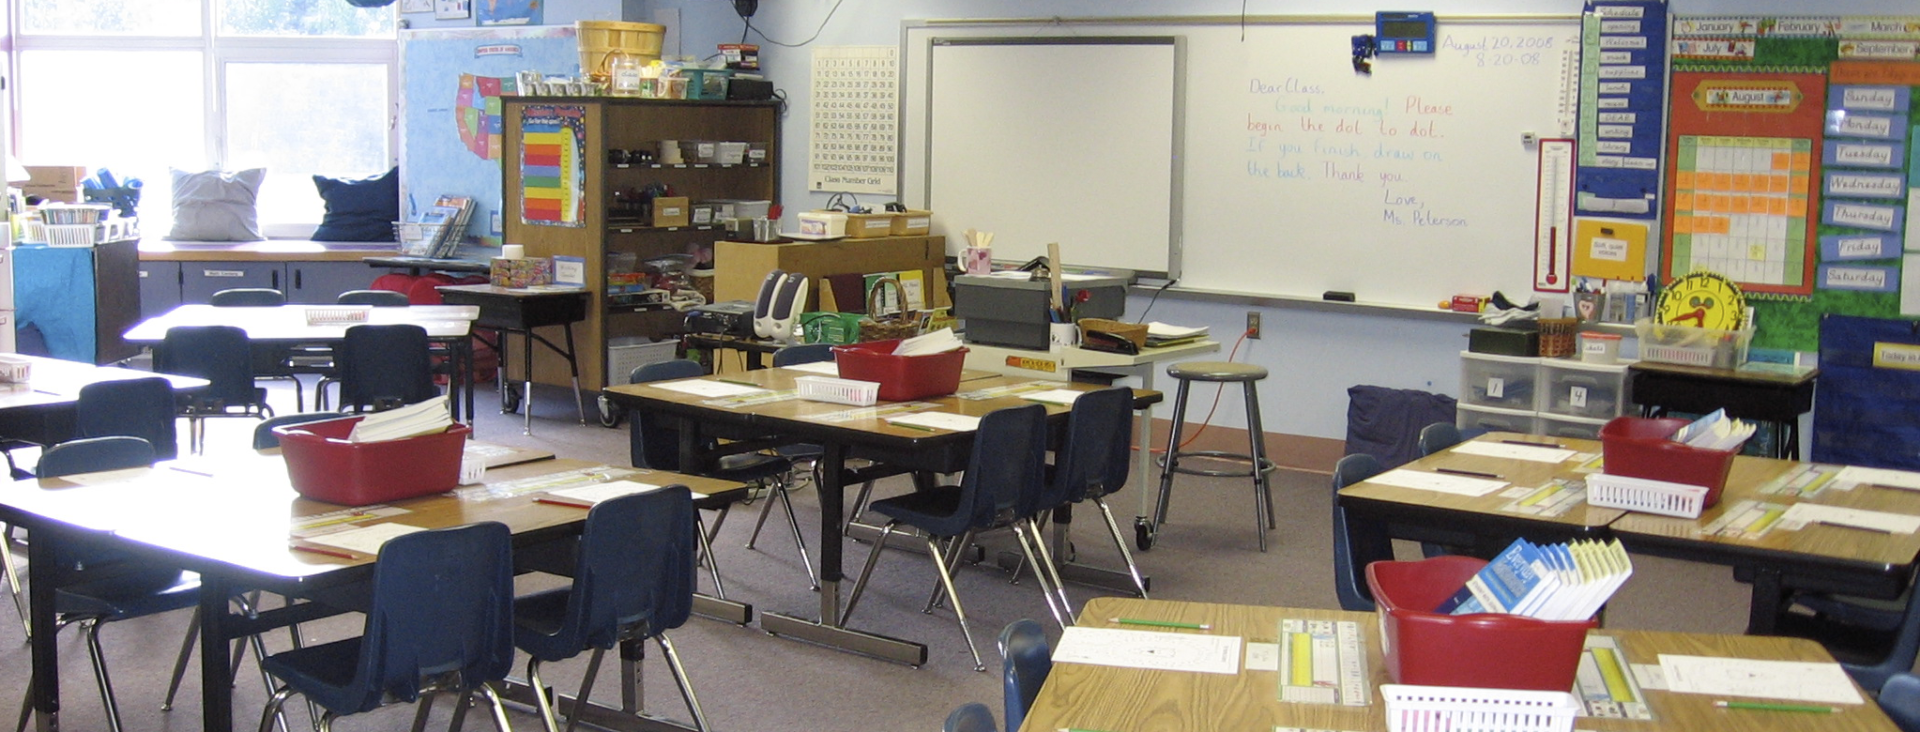 Classroom Ideas For Autistic Students ~ Improving classroom focus for students with autism